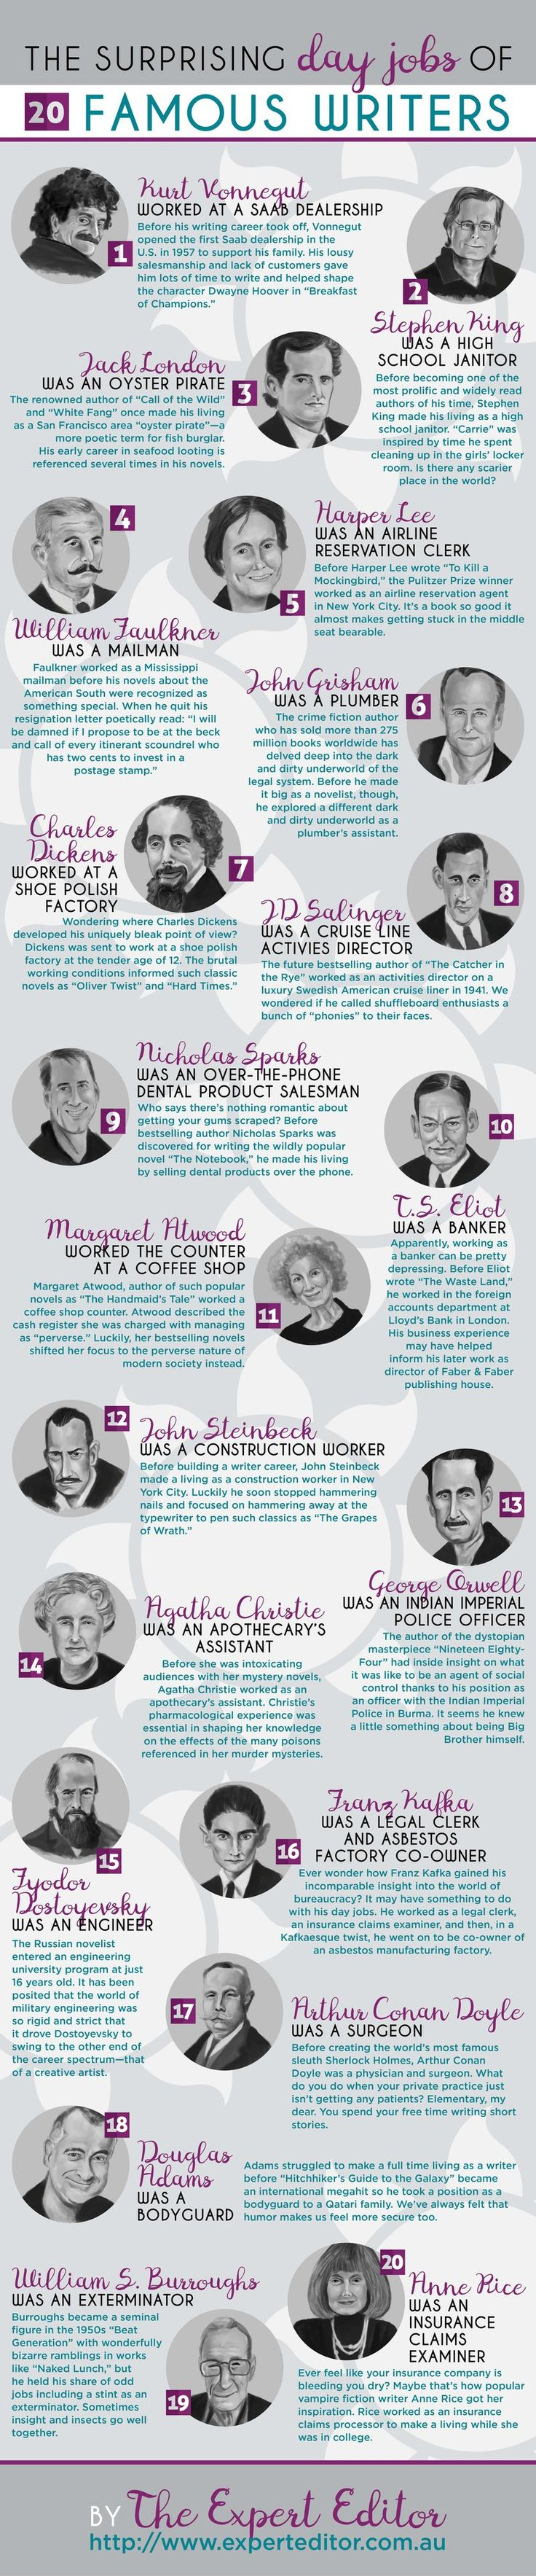 Authors and their day jobs infographic (GalleyCat)